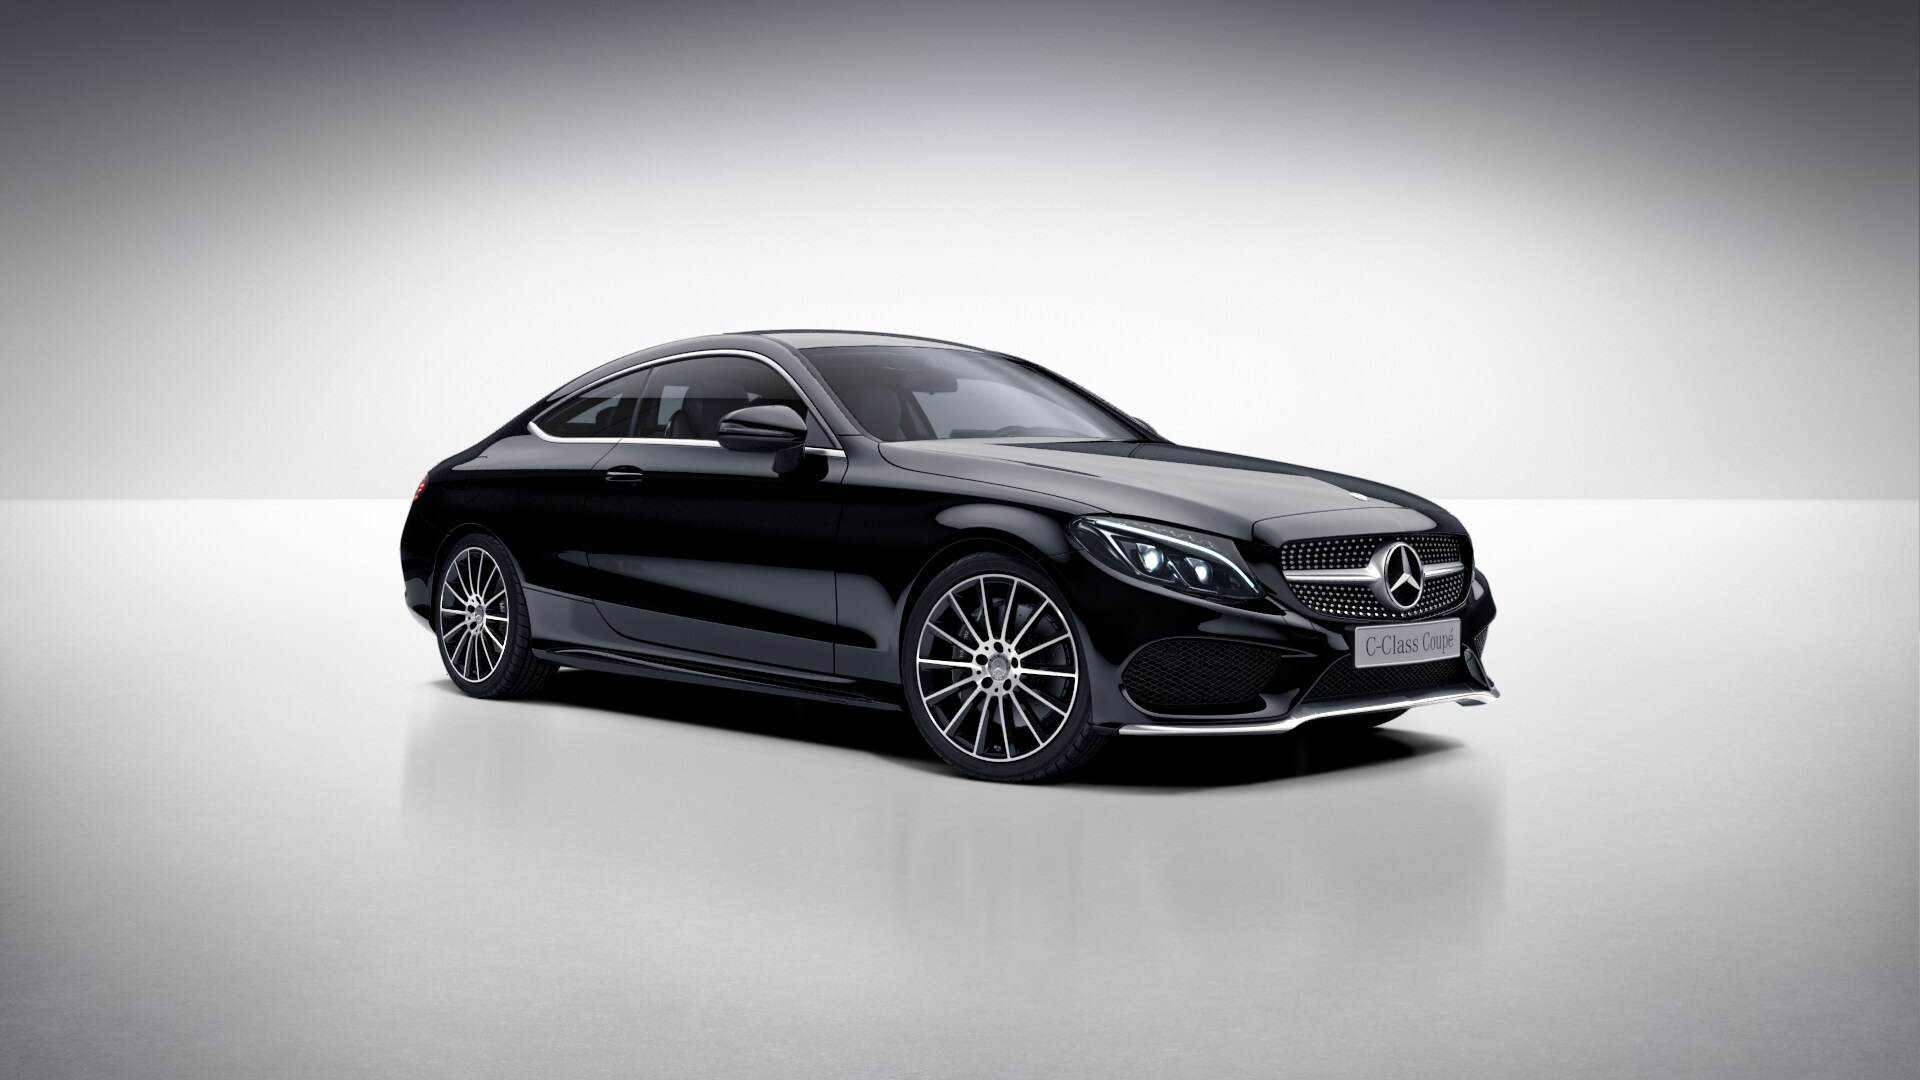 new 2017 mercedes benz c class c300 2 door coupe 1737650 mercedes benz of canada new and cpo. Black Bedroom Furniture Sets. Home Design Ideas